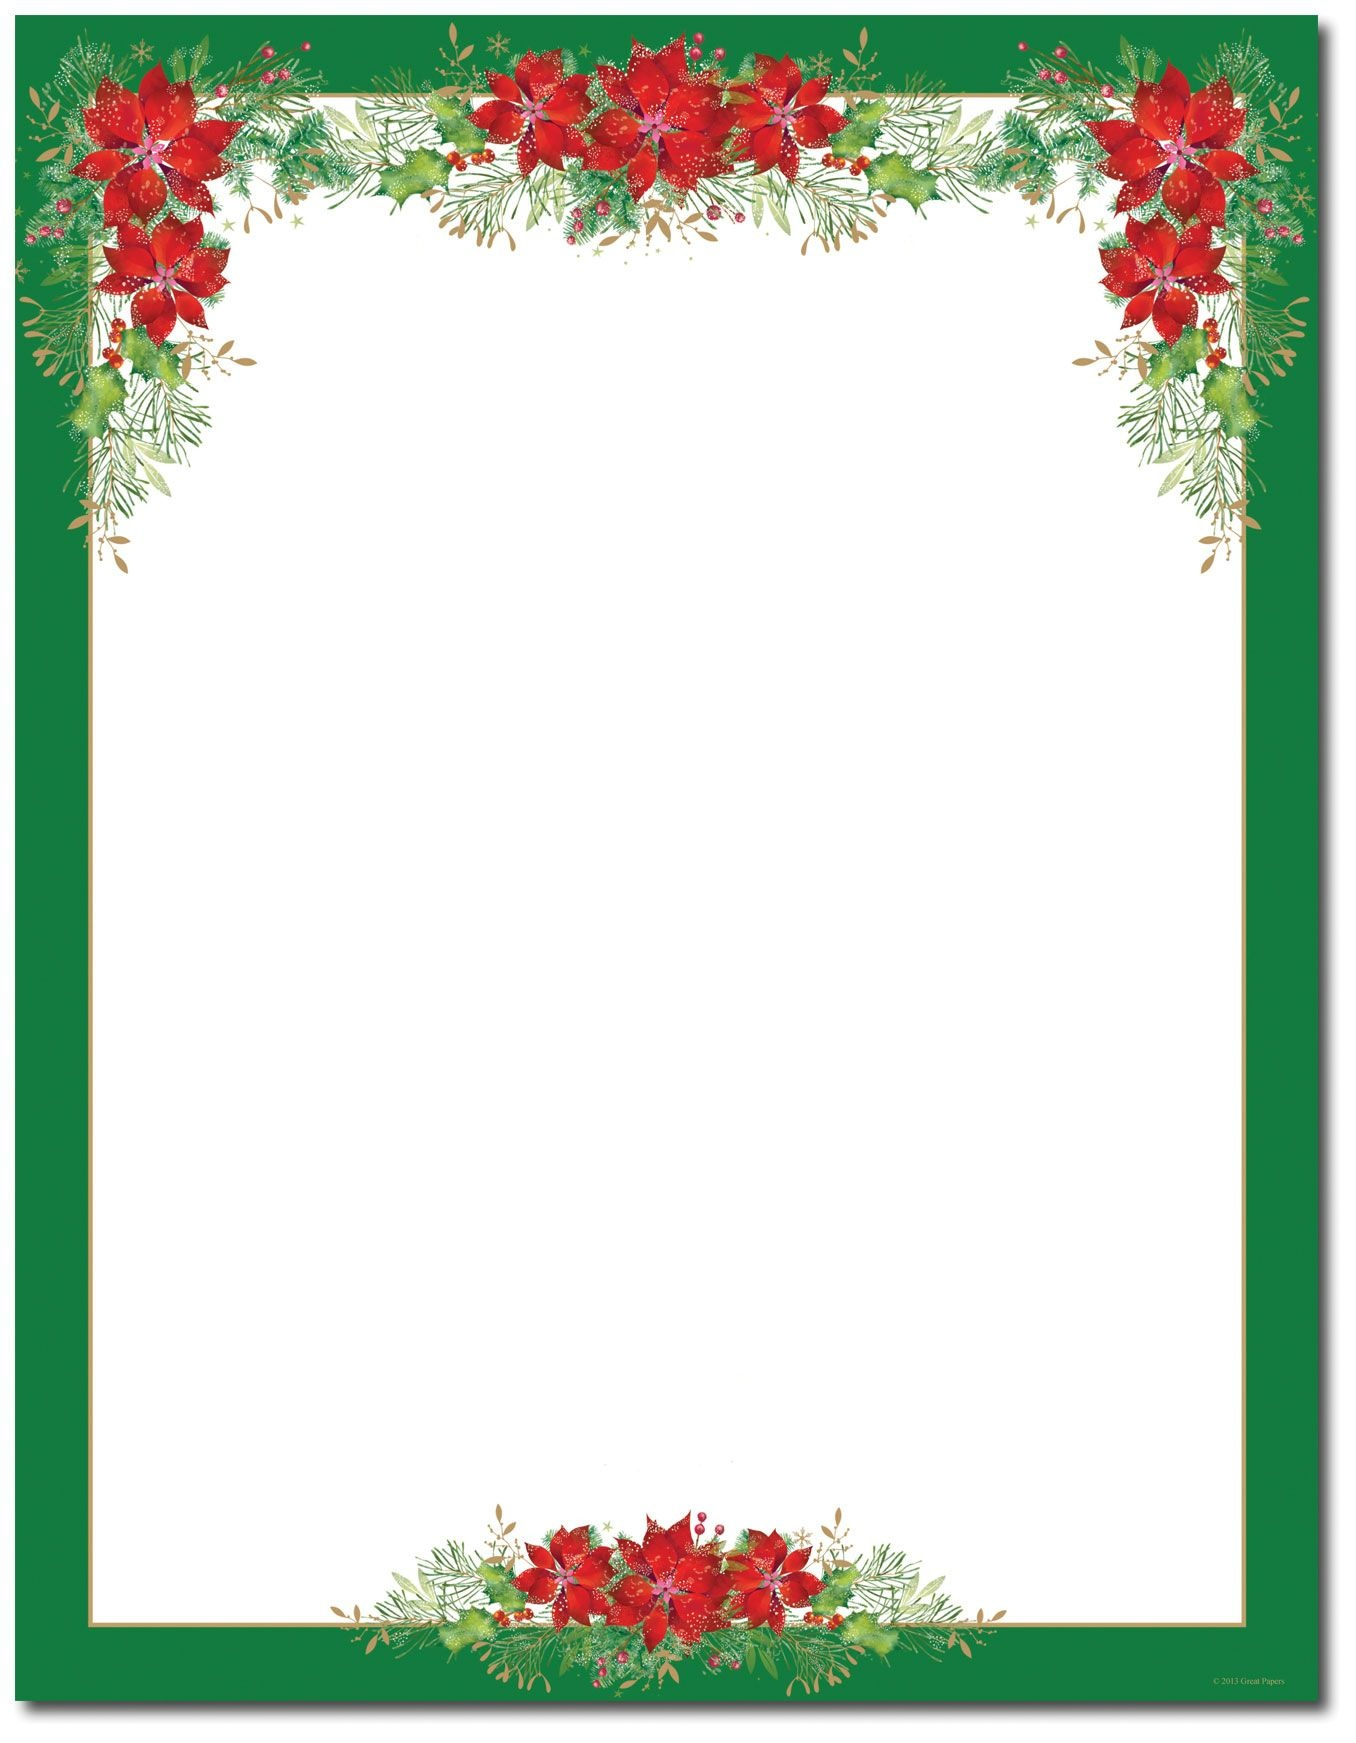 Poinsettia Valance Letterhead | Holiday Papers | Christmas Border - Free Printable Christmas Stationery Paper